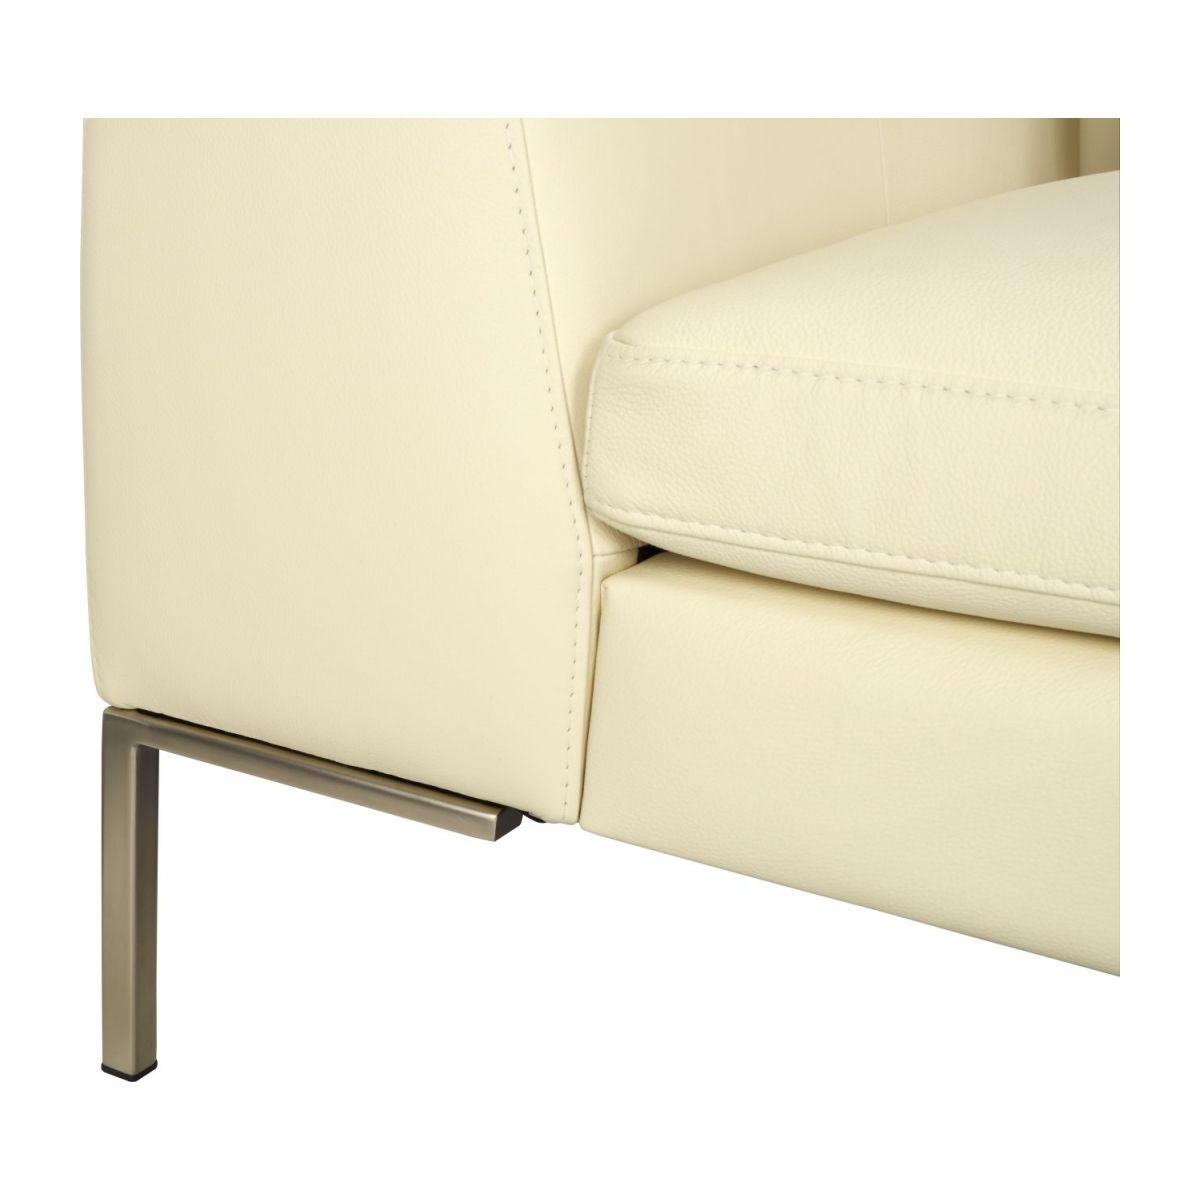 3 seater sofa in Eton veined leather, cream n°7